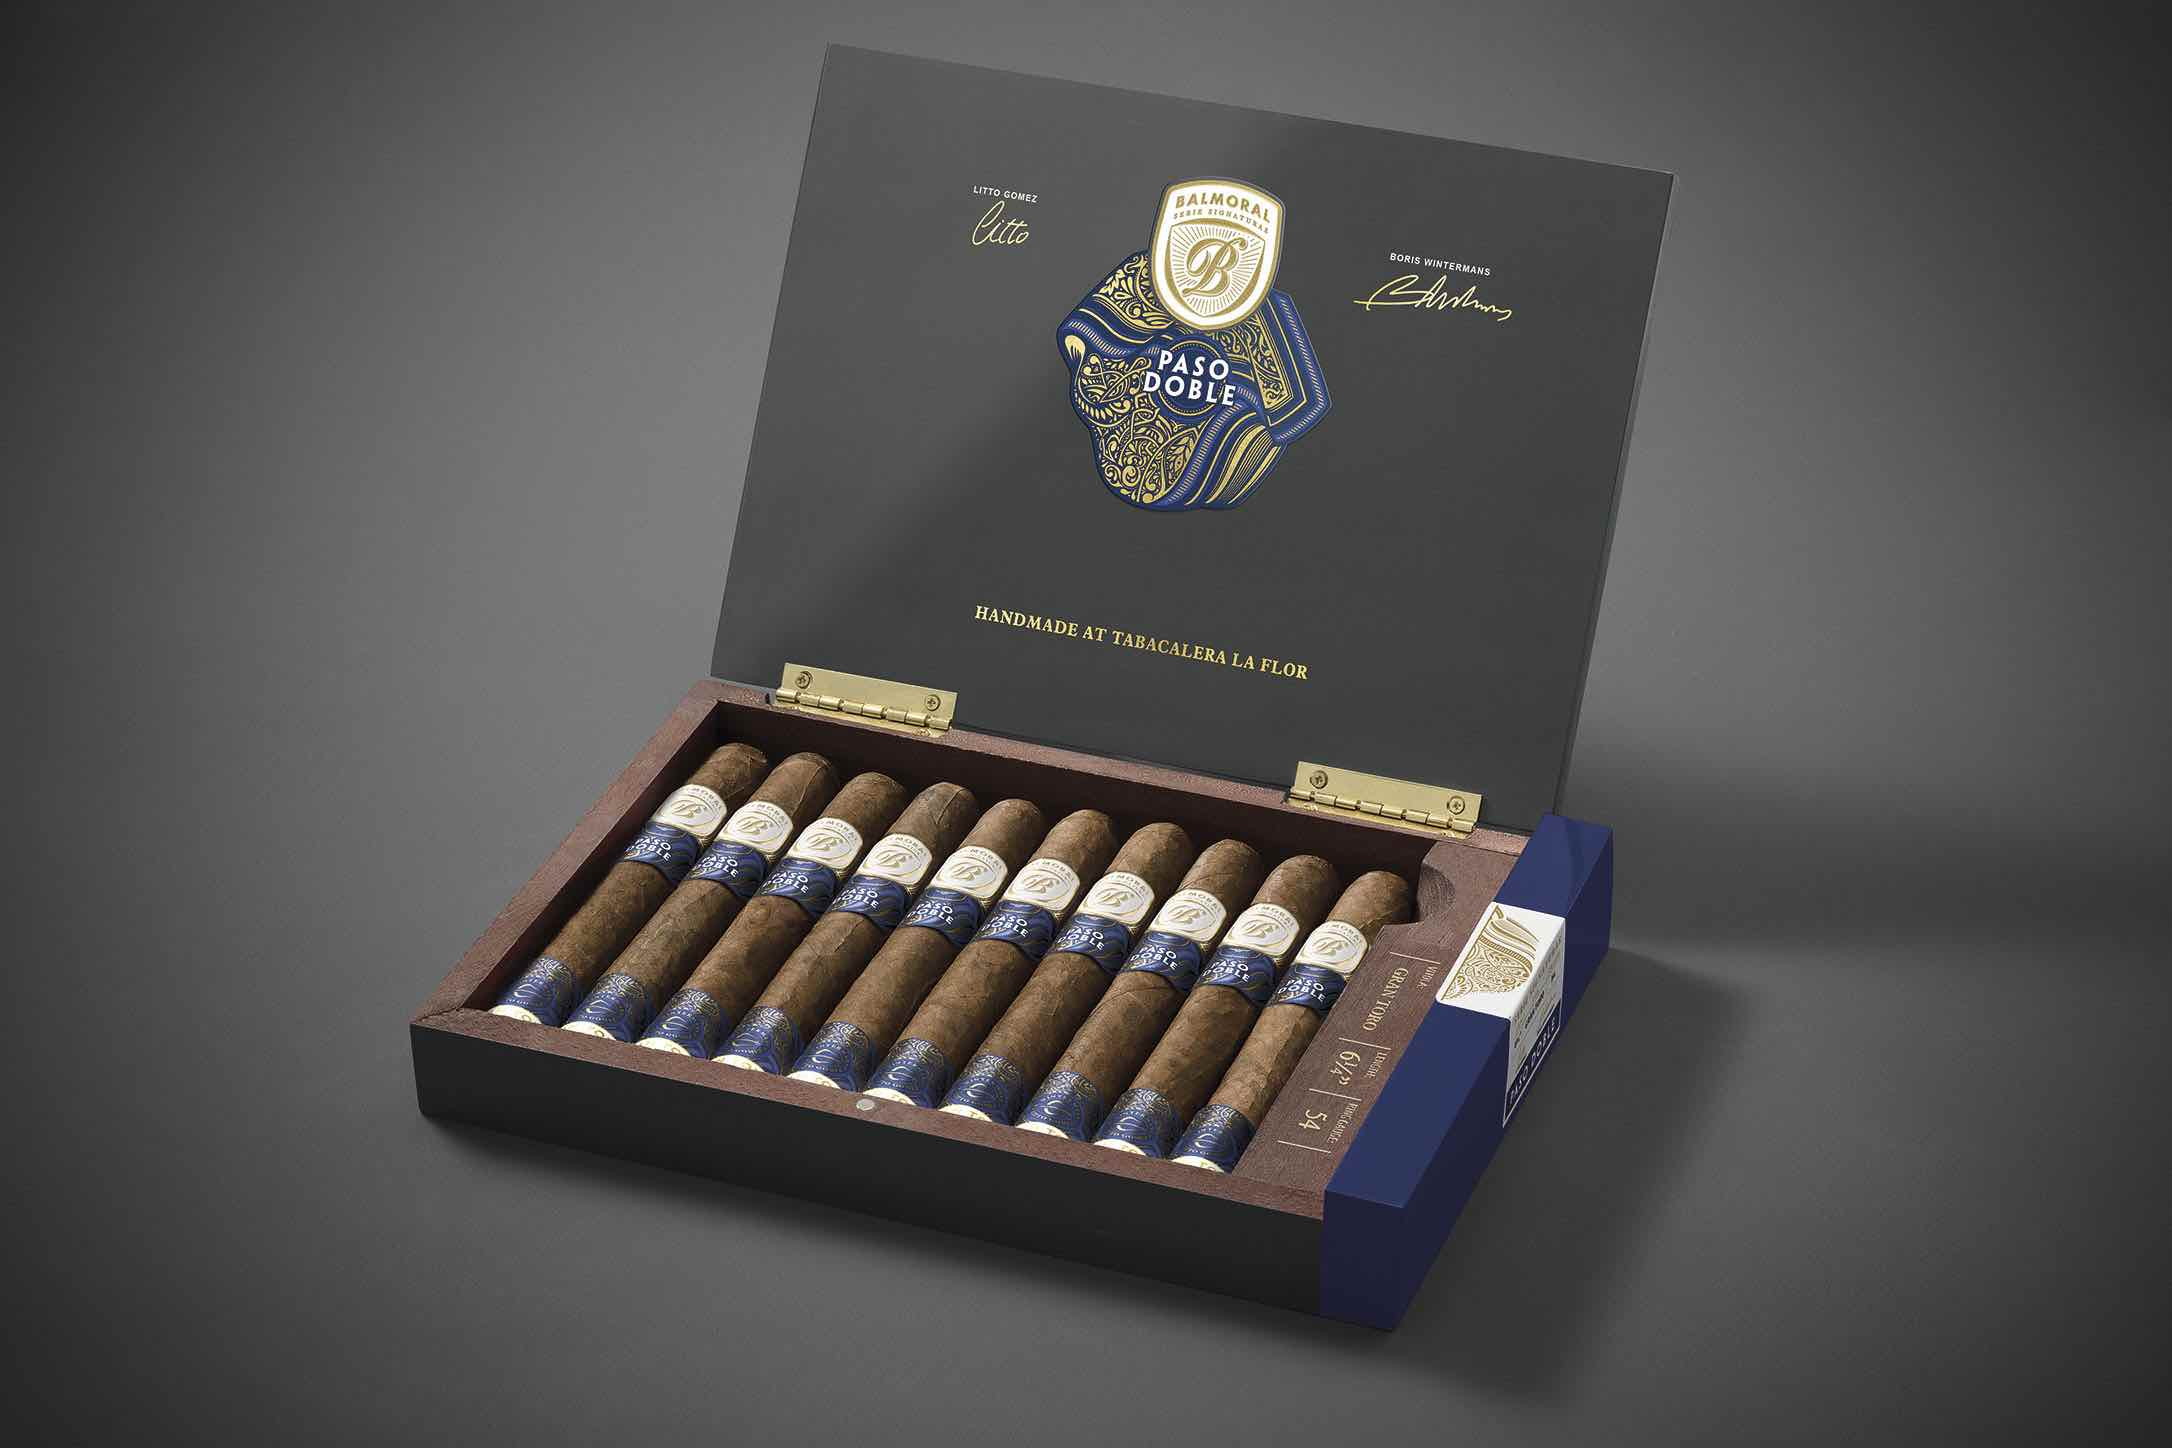 Cigar News: Royal Agio Cigars Ships Balmoral Serie Signaturas Paso Doble to Retailers